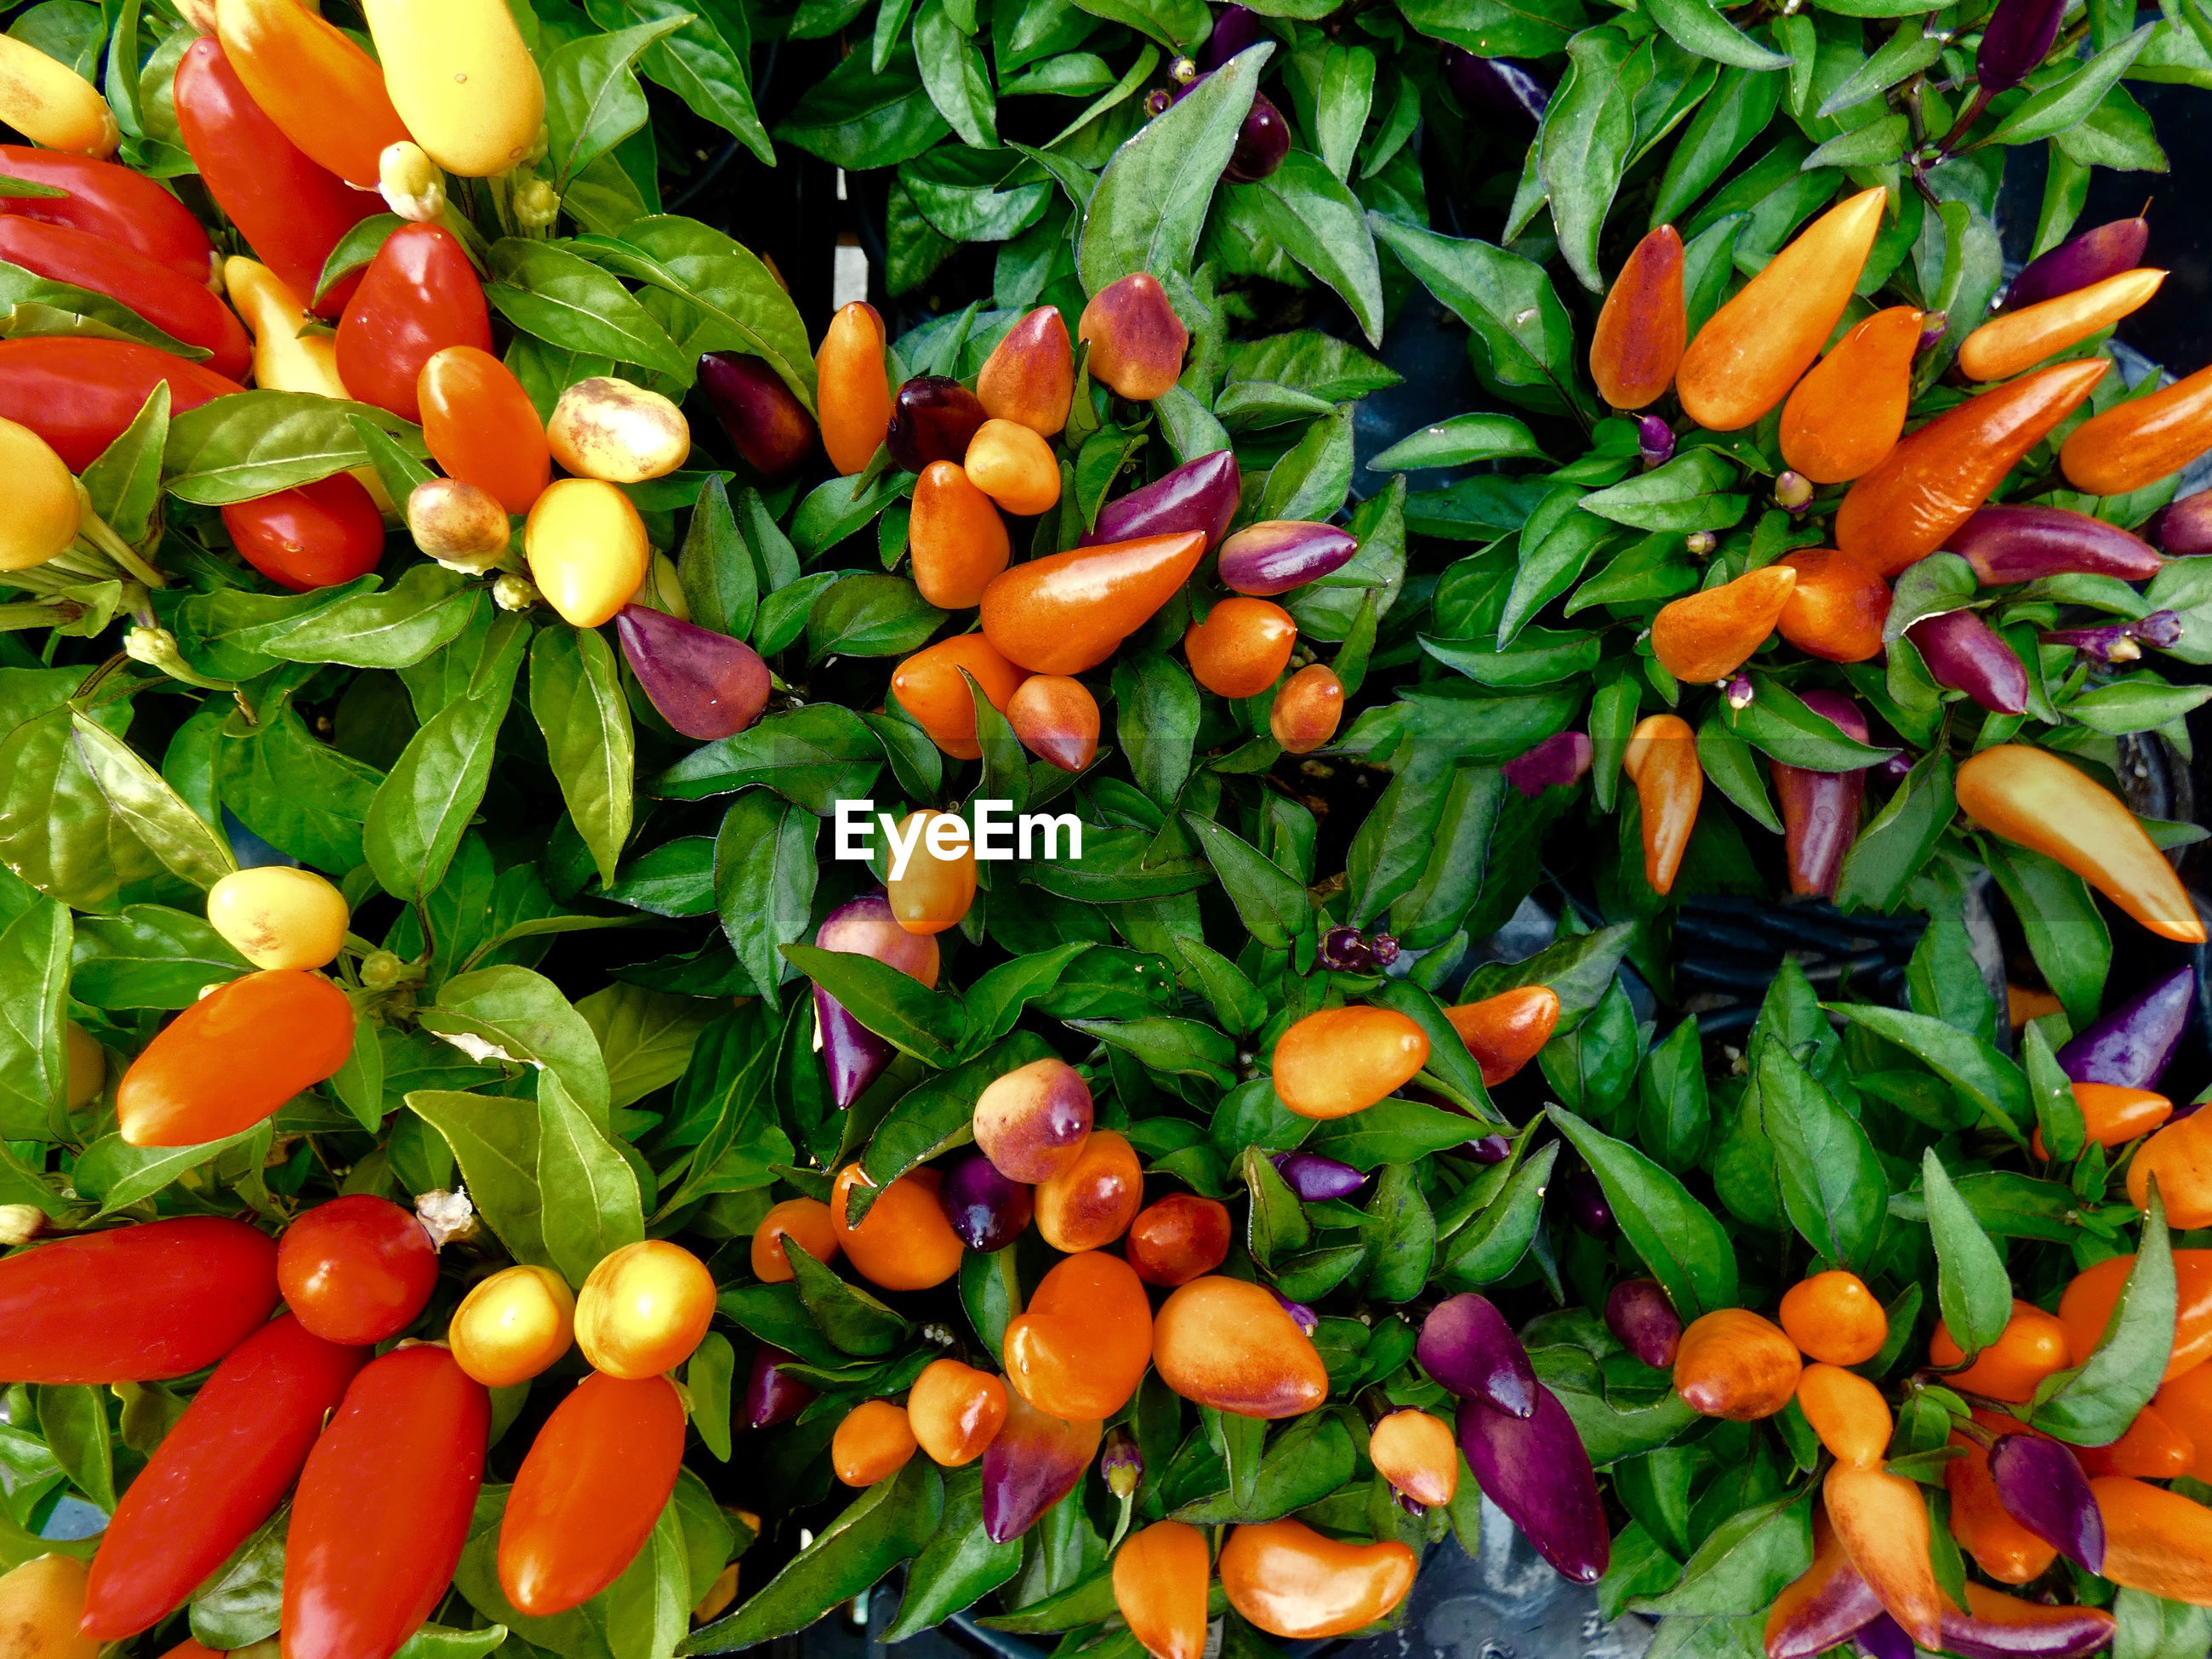 FULL FRAME SHOT OF FRUITS AND VEGETABLES